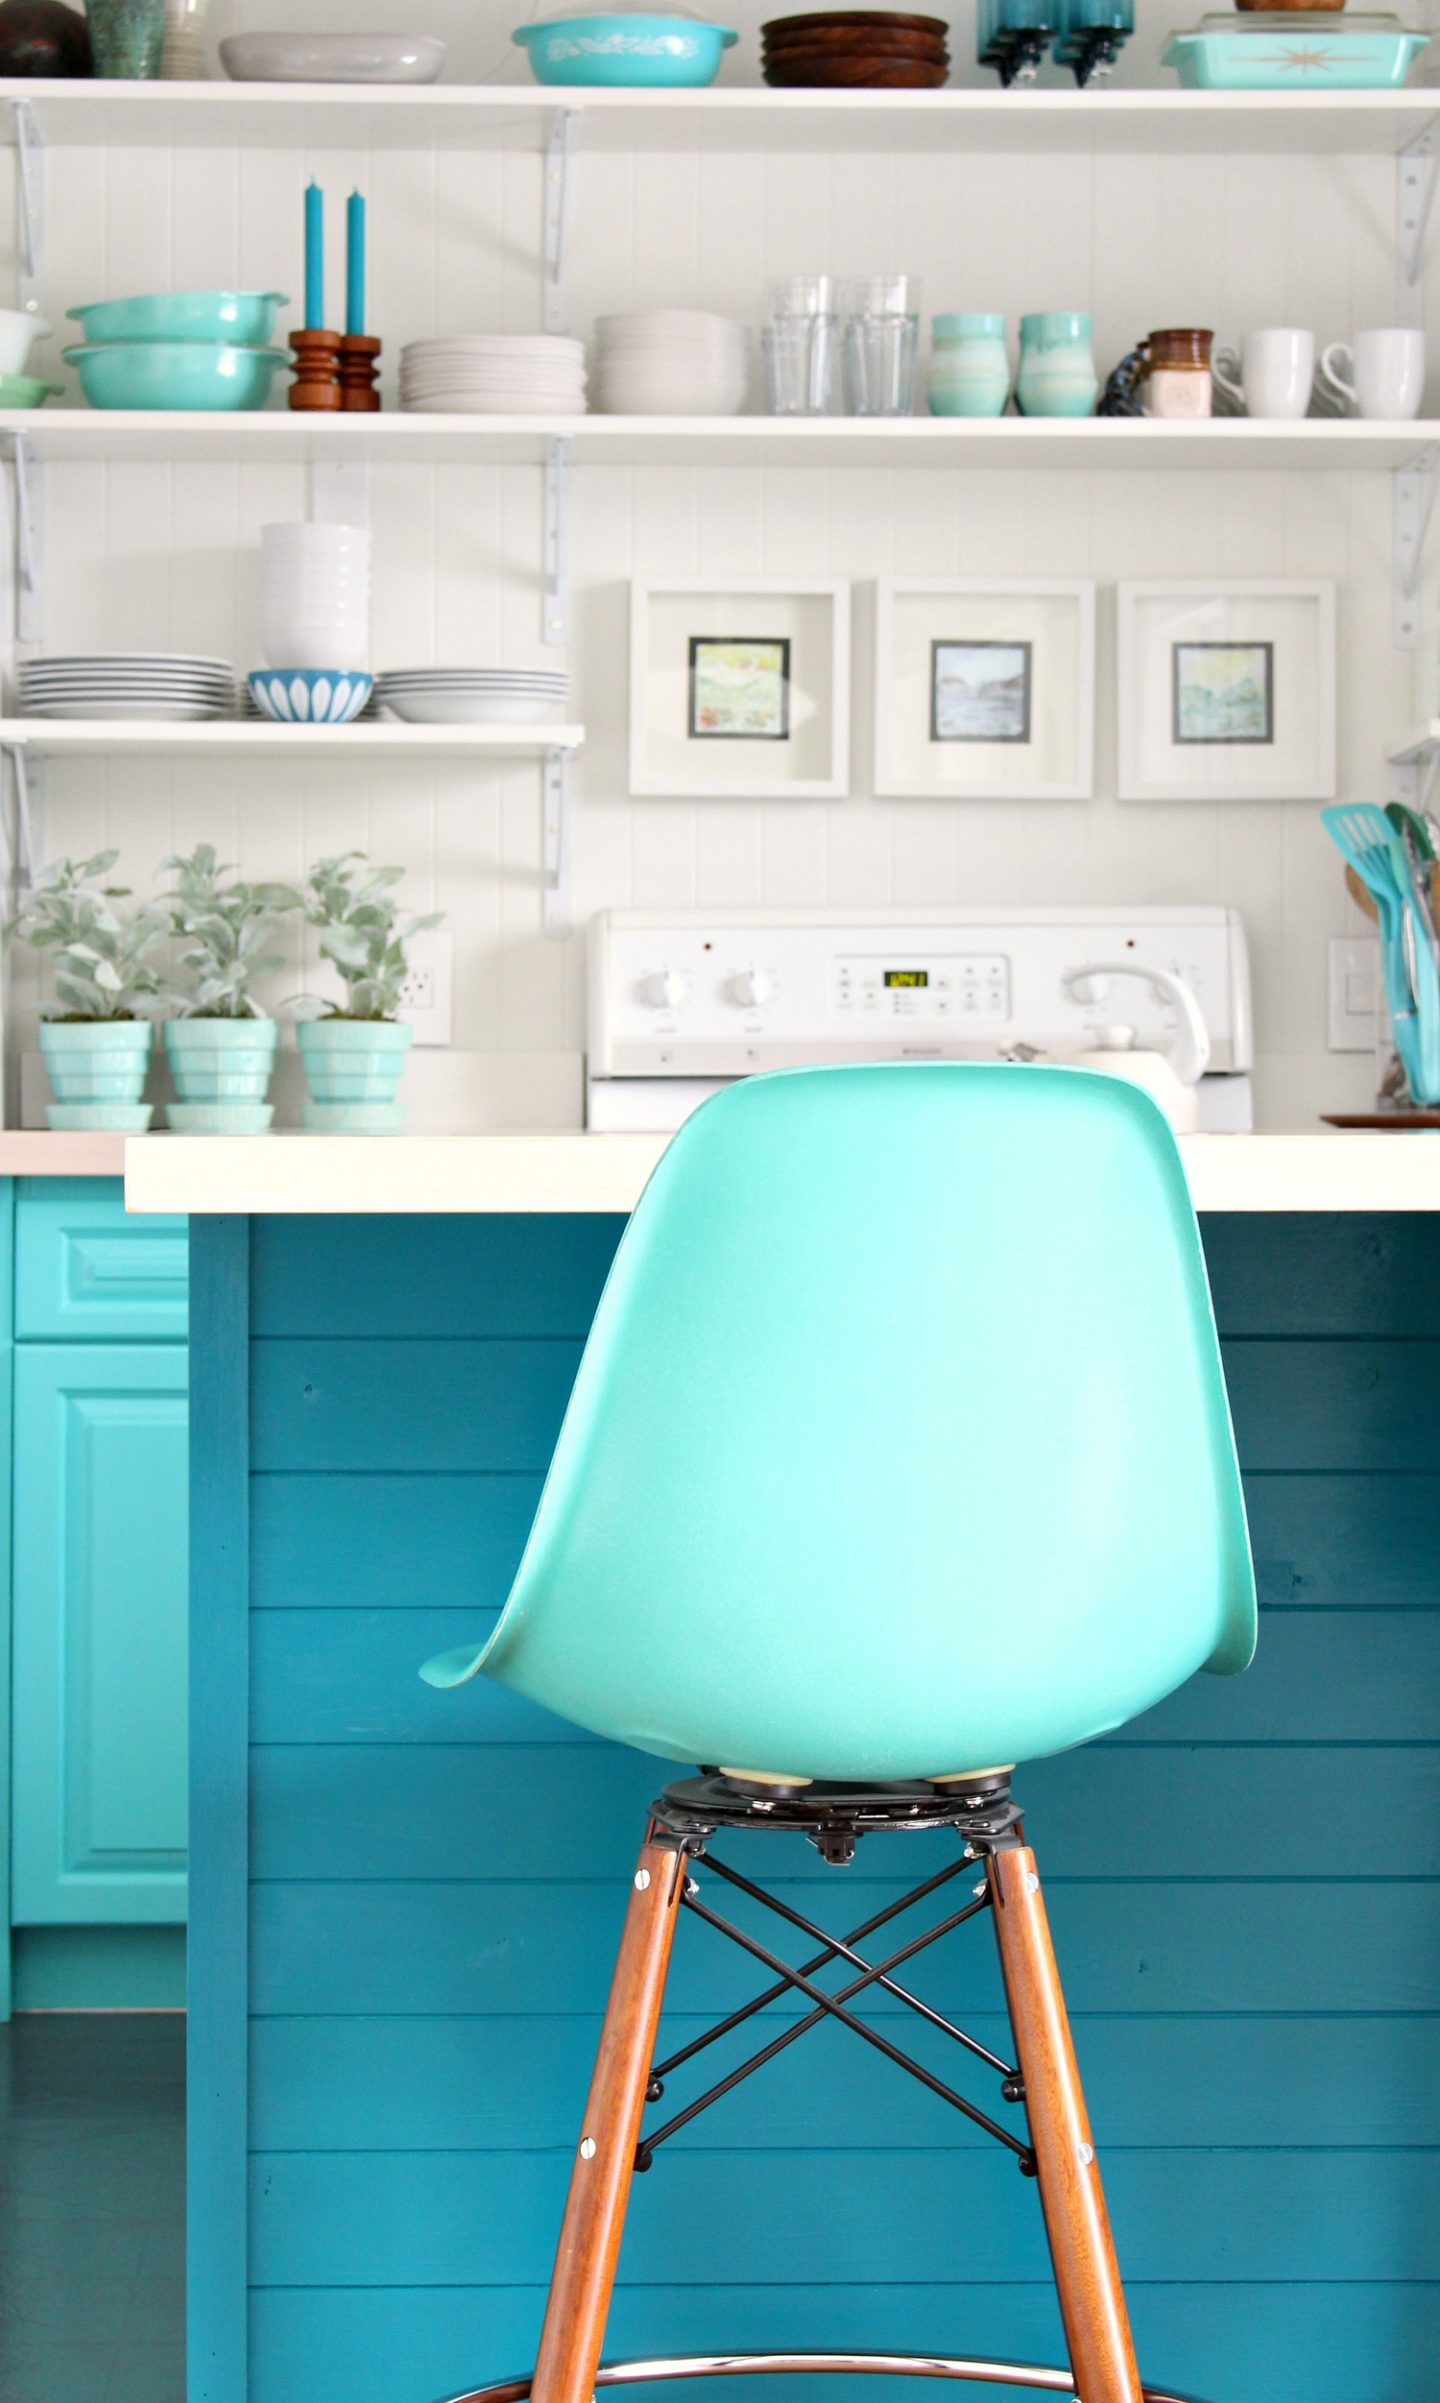 How To Install Tongue And Groove Paneling On Kitchen Cabinets New Teal Cabinet Color Dans Le Lakehouse